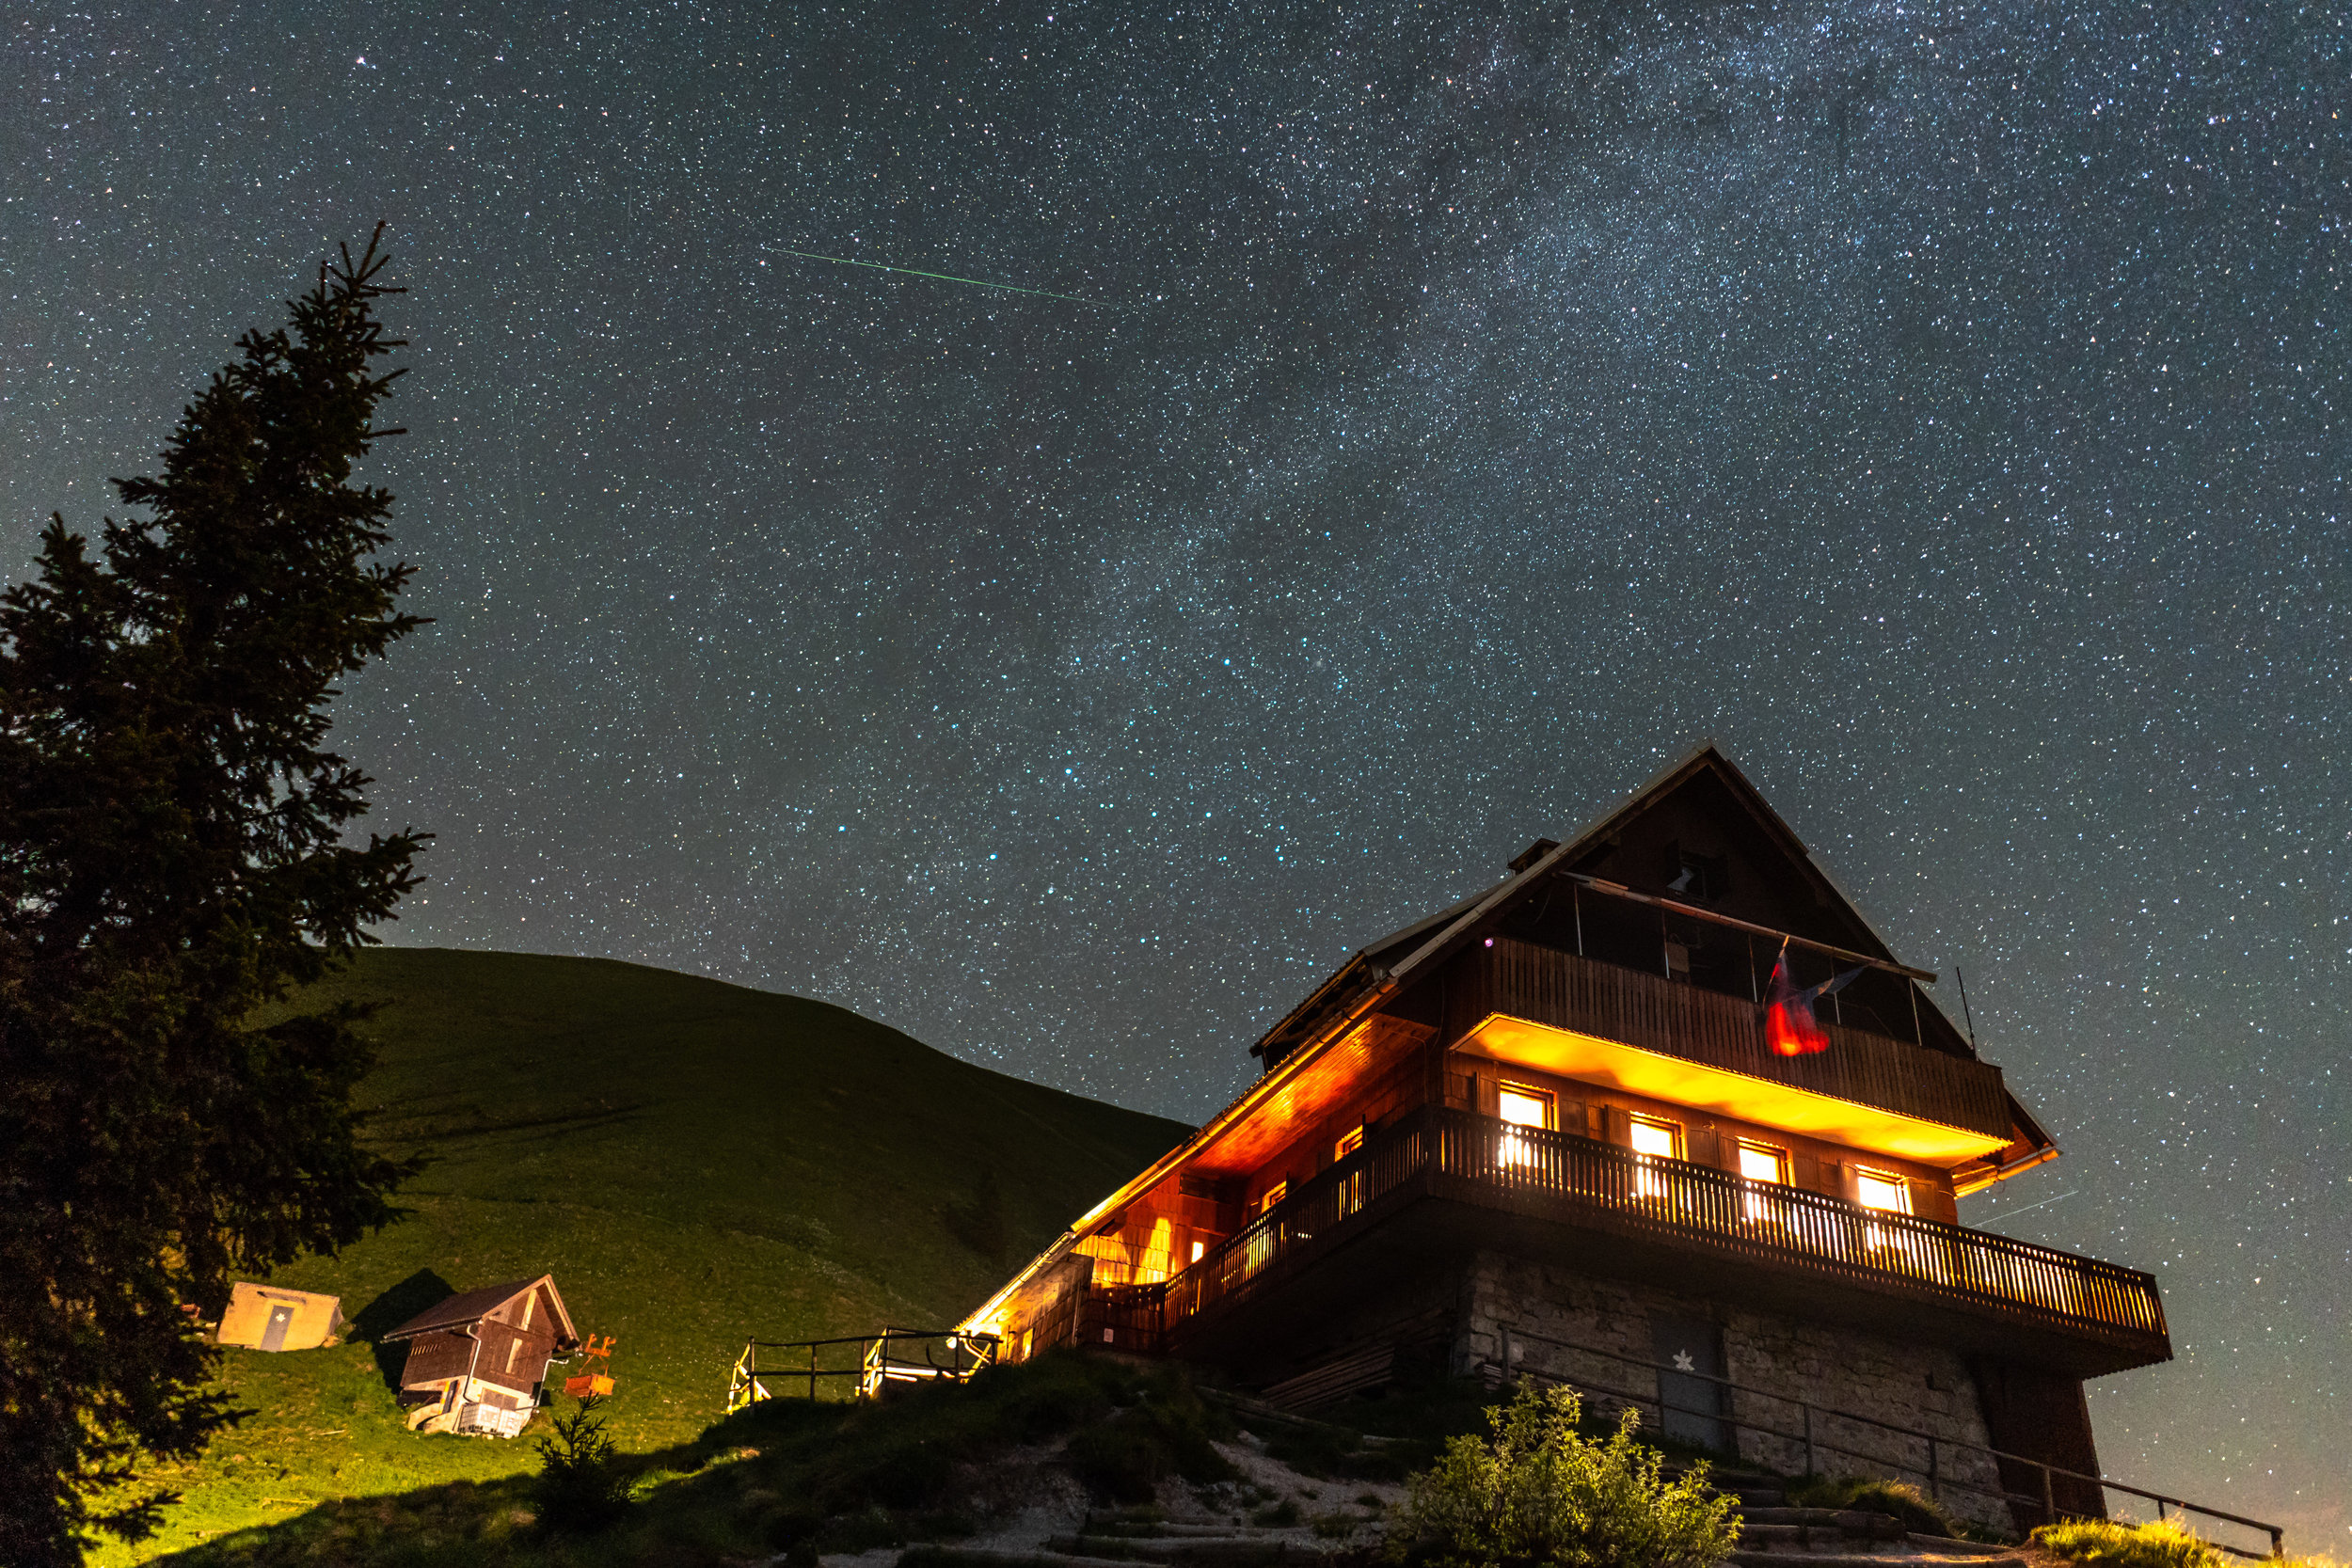 The Milky way above the mountain hut on Mt. Golica.